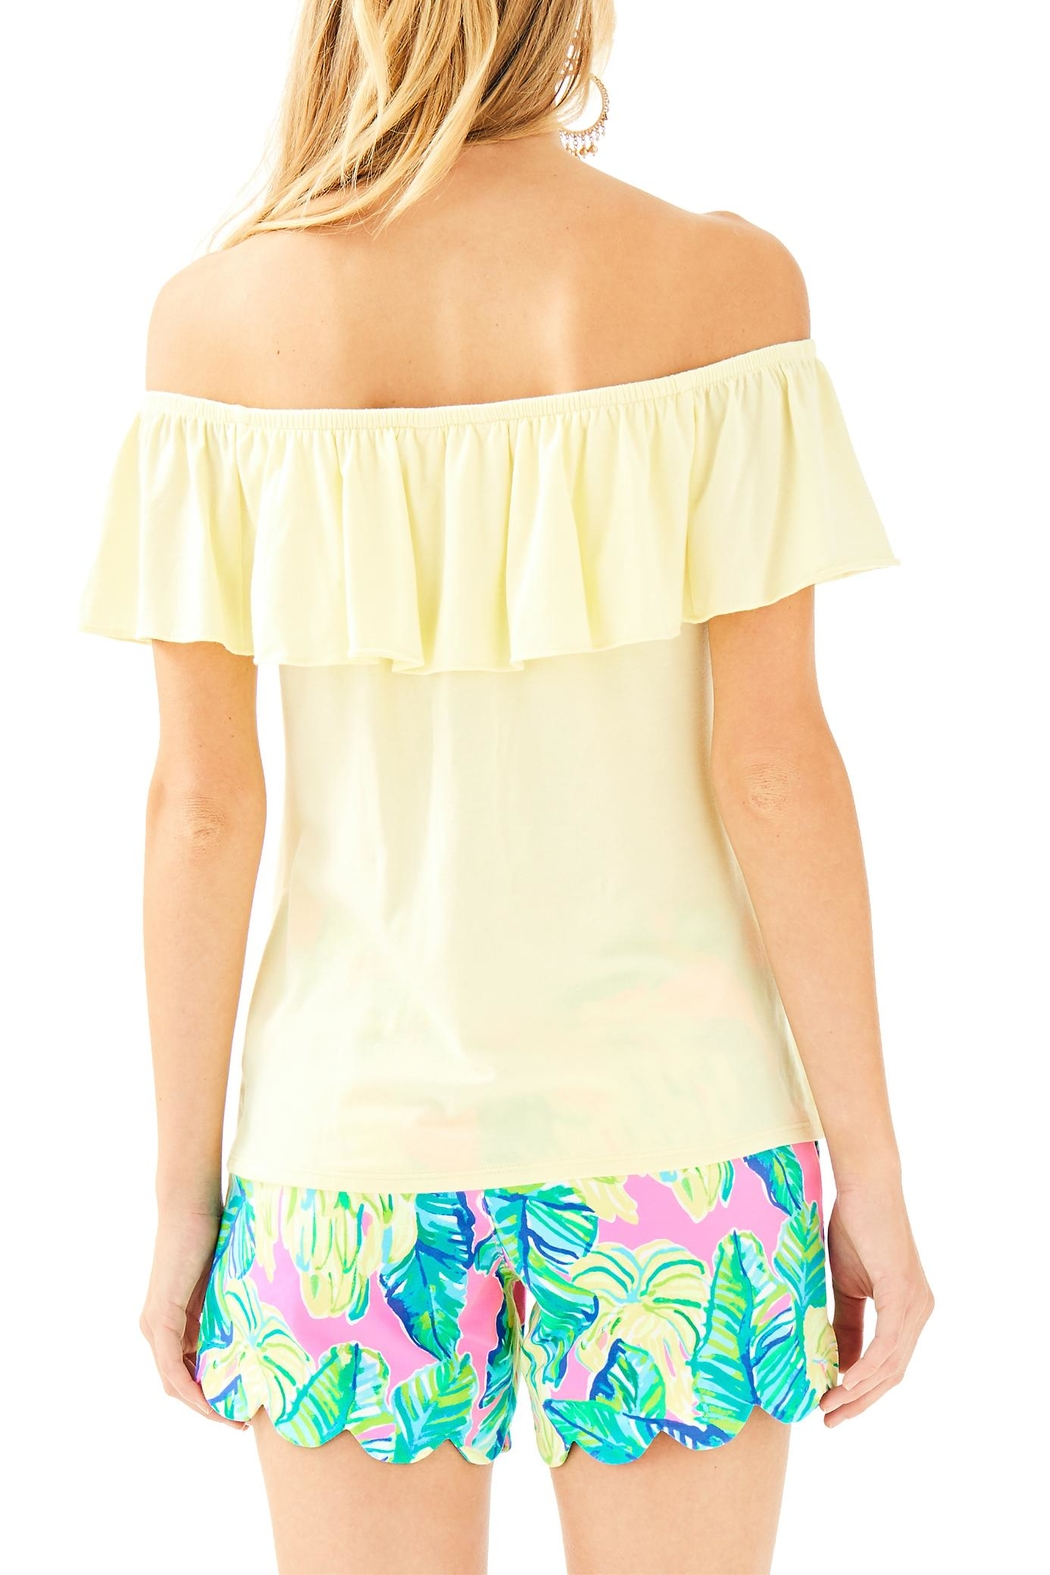 Lilly Pulitzer La Fortuna Top - Front Full Image